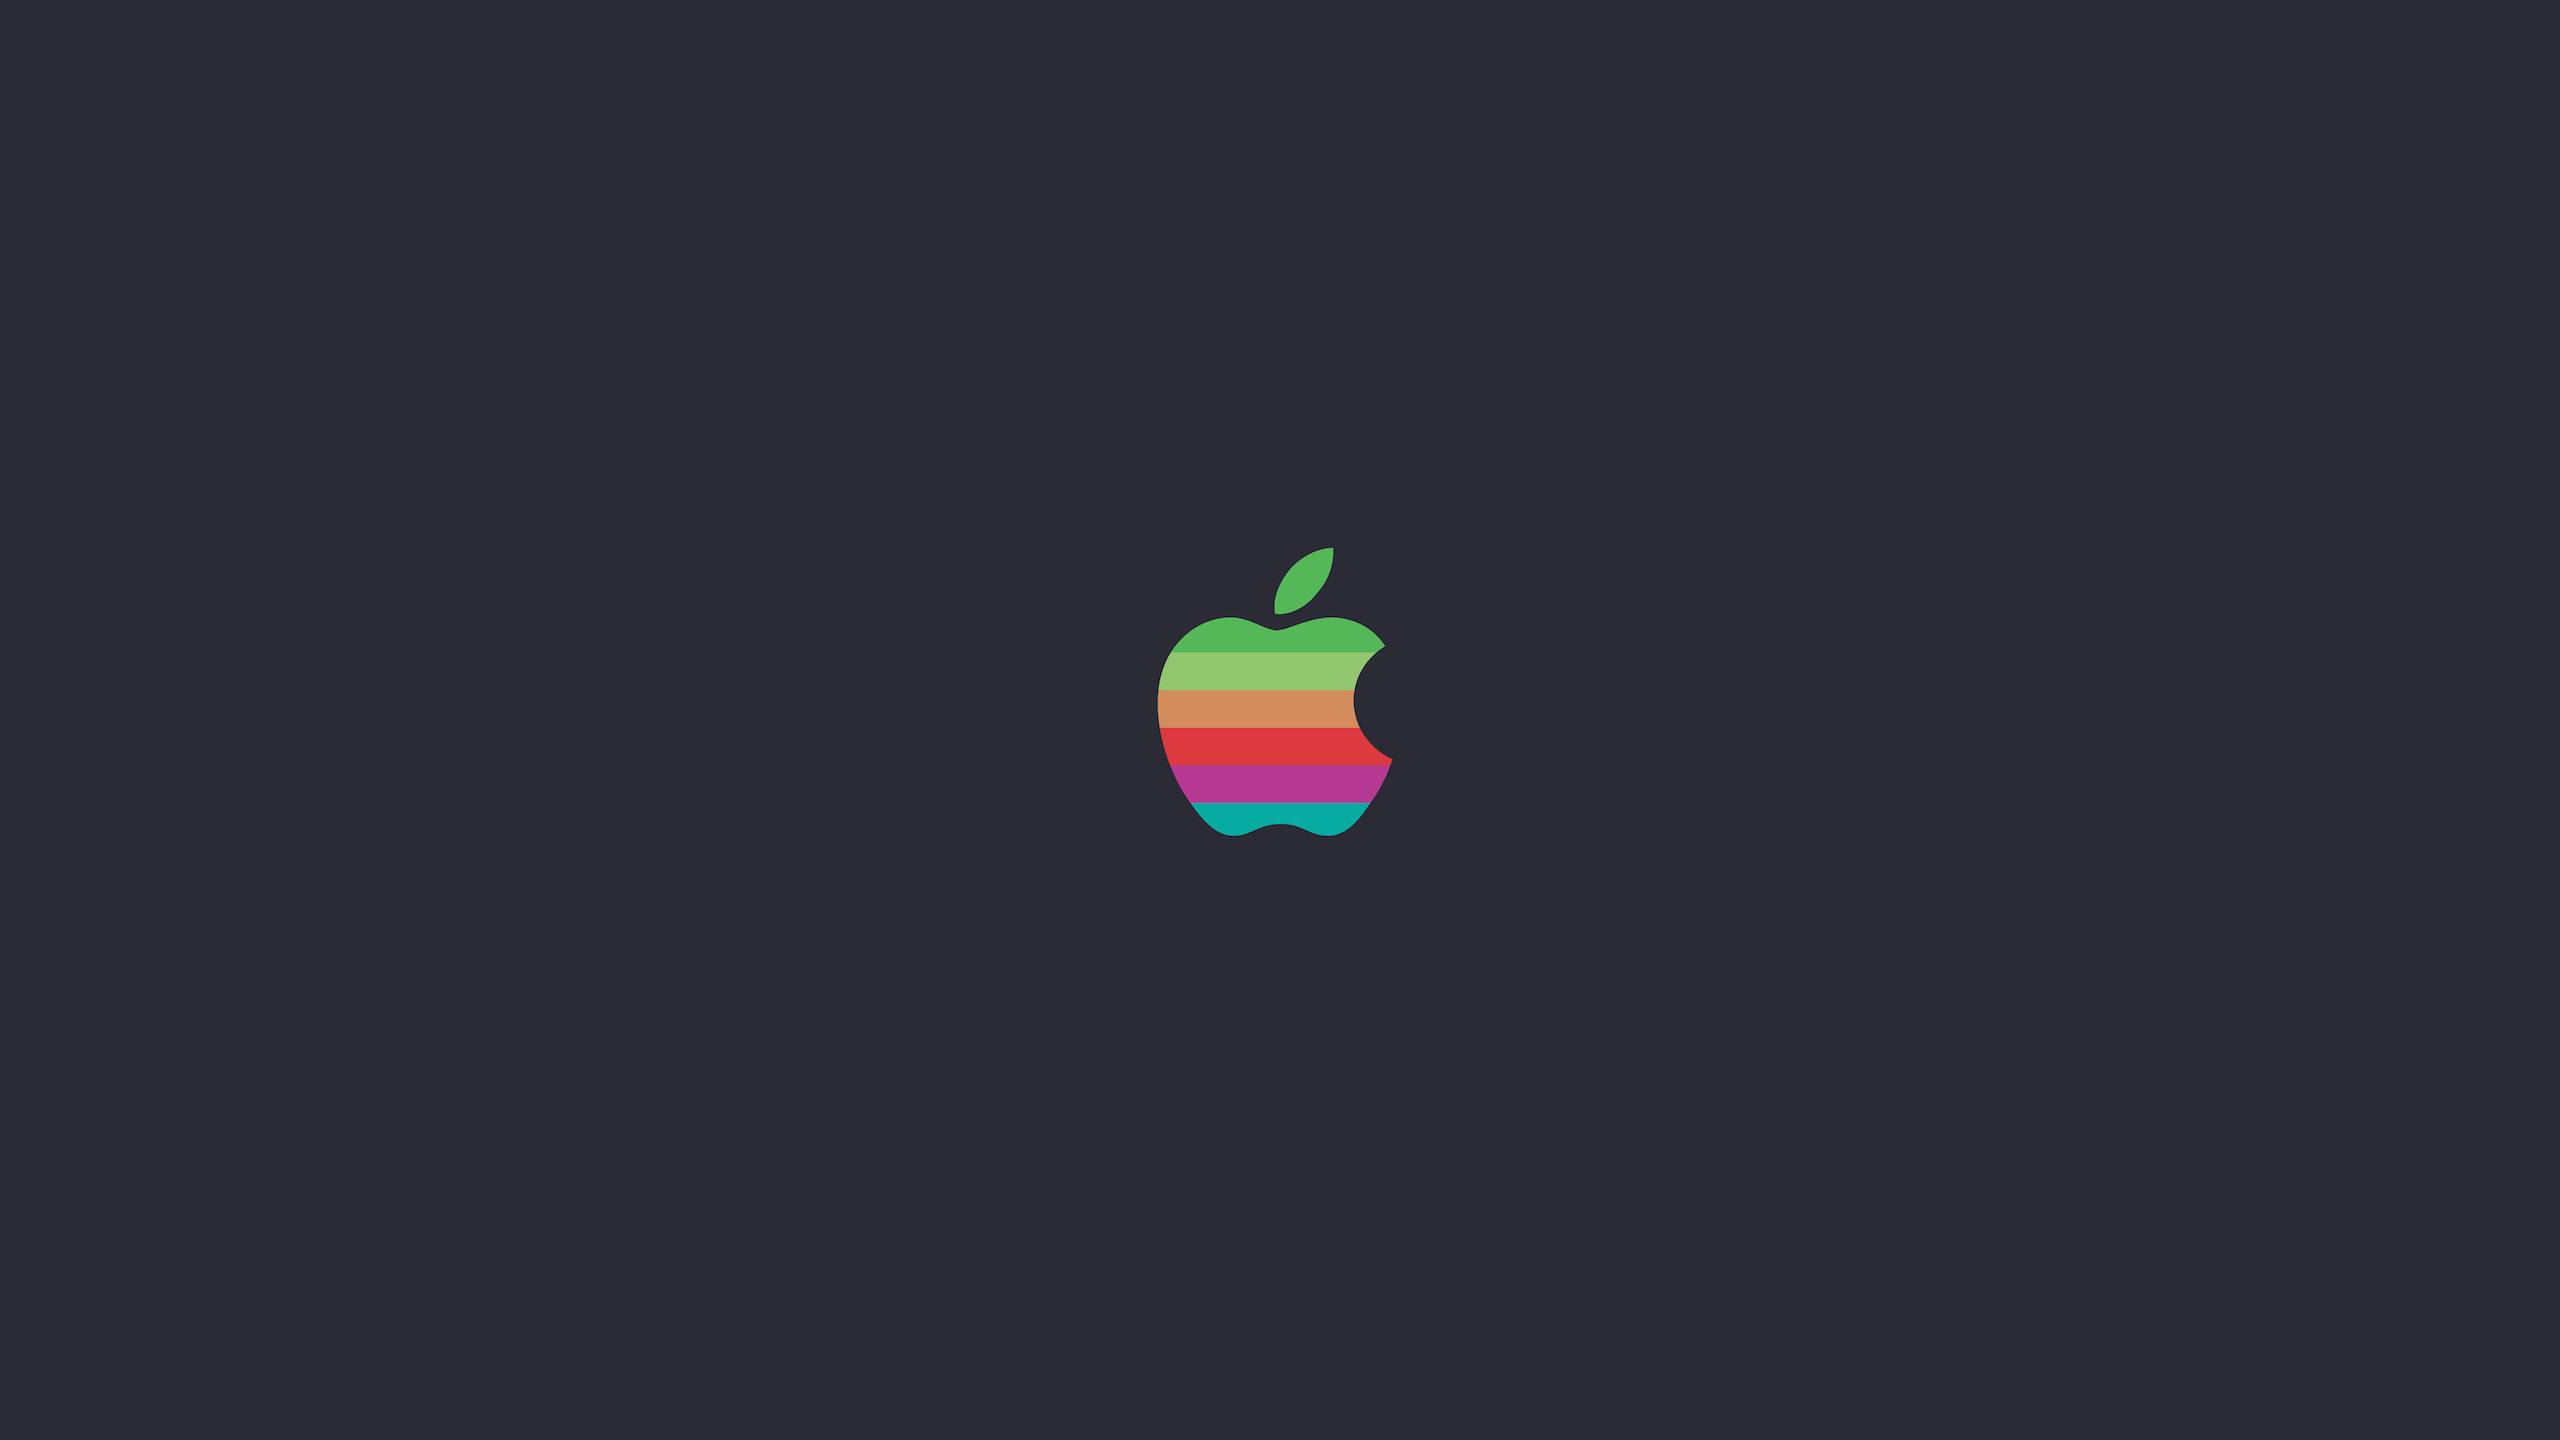 Retro Apple Logo WWDC 2016 wallpapers